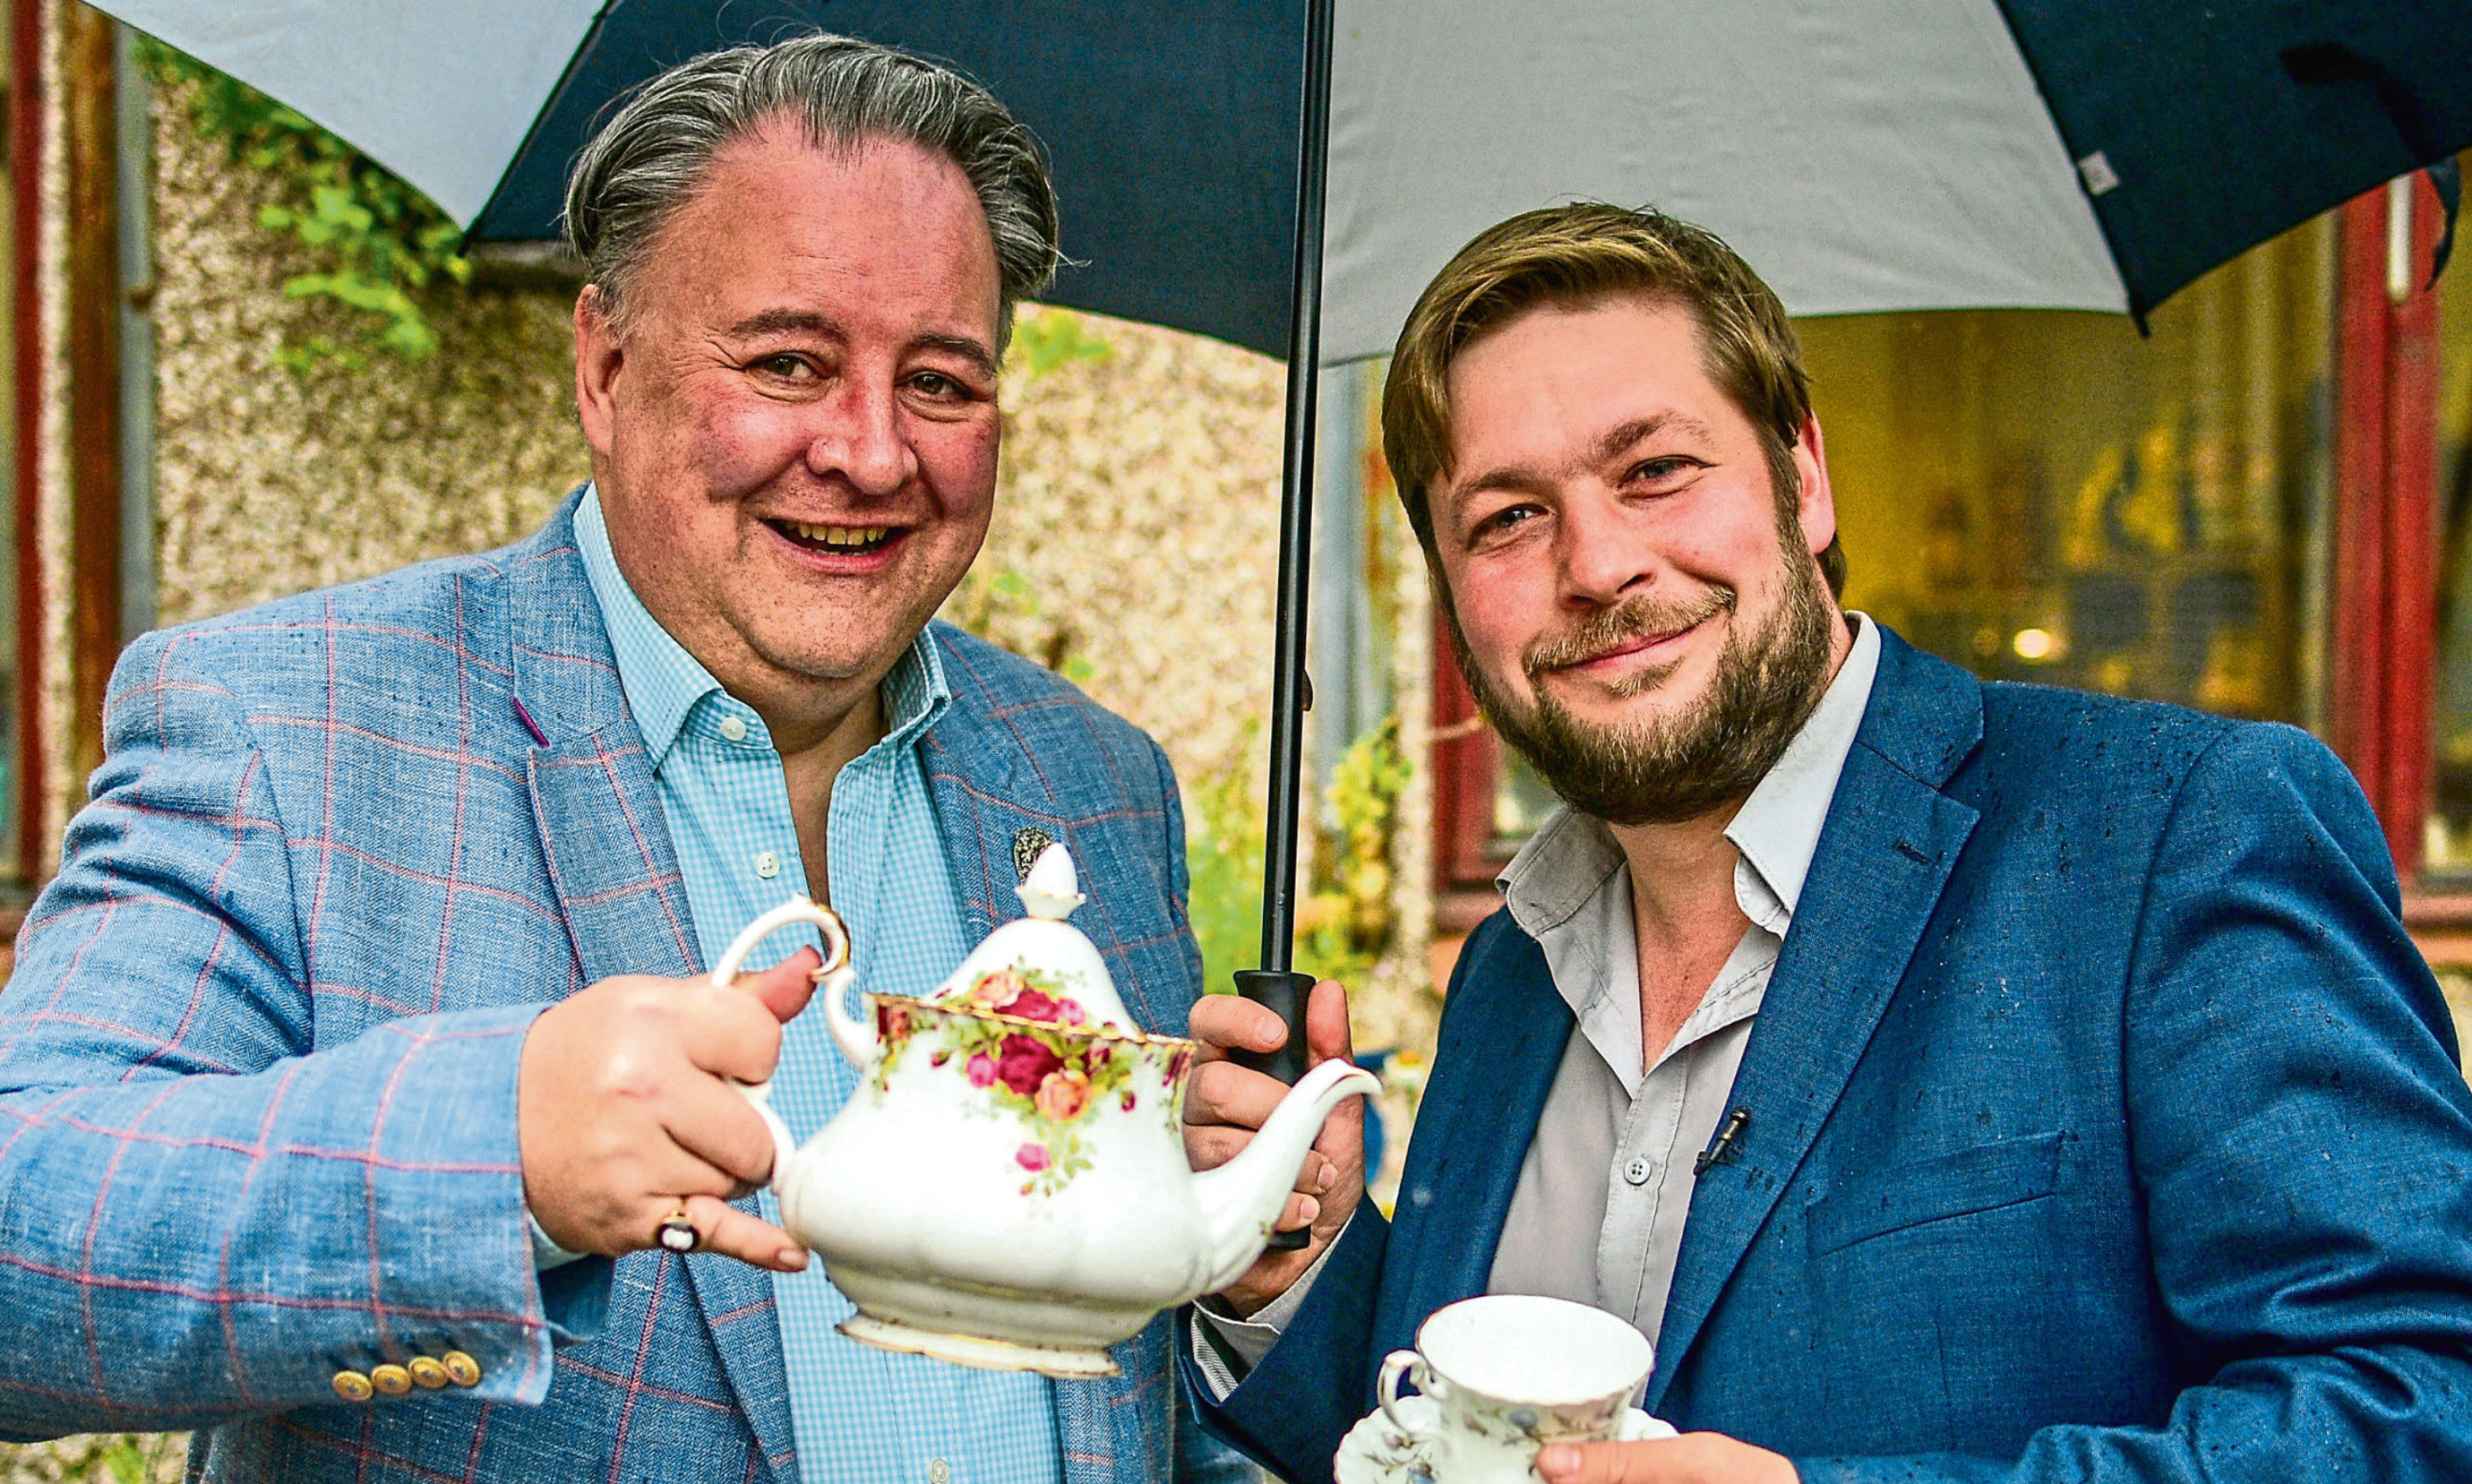 Antiques Road Trip airs weekdays at 4.30pm on BBC One.